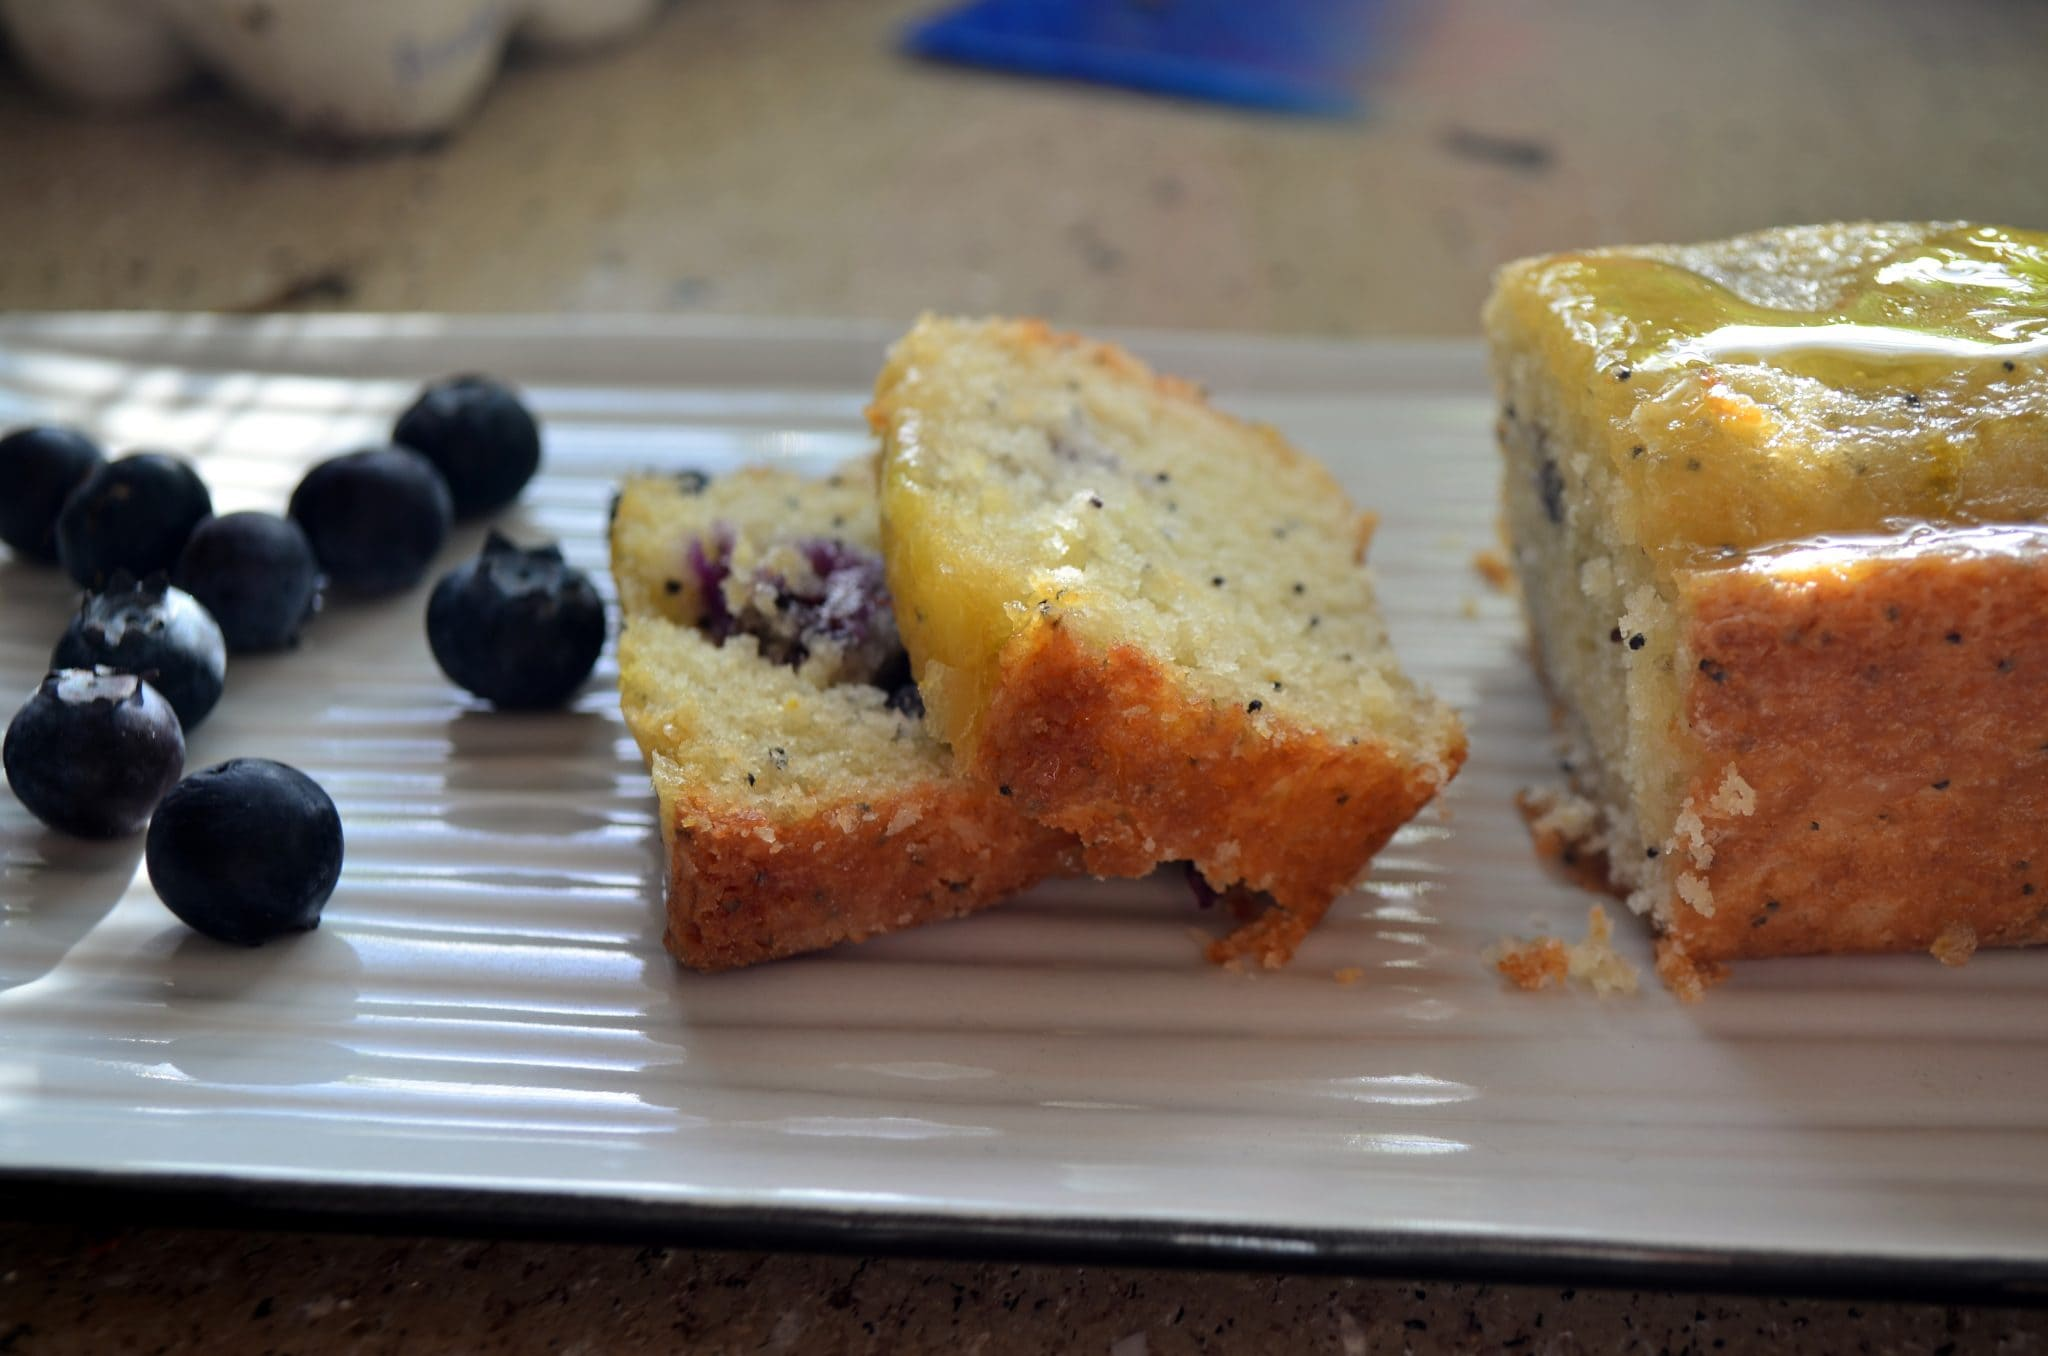 Blueberry Poppyseed Bread with Orange Glaze